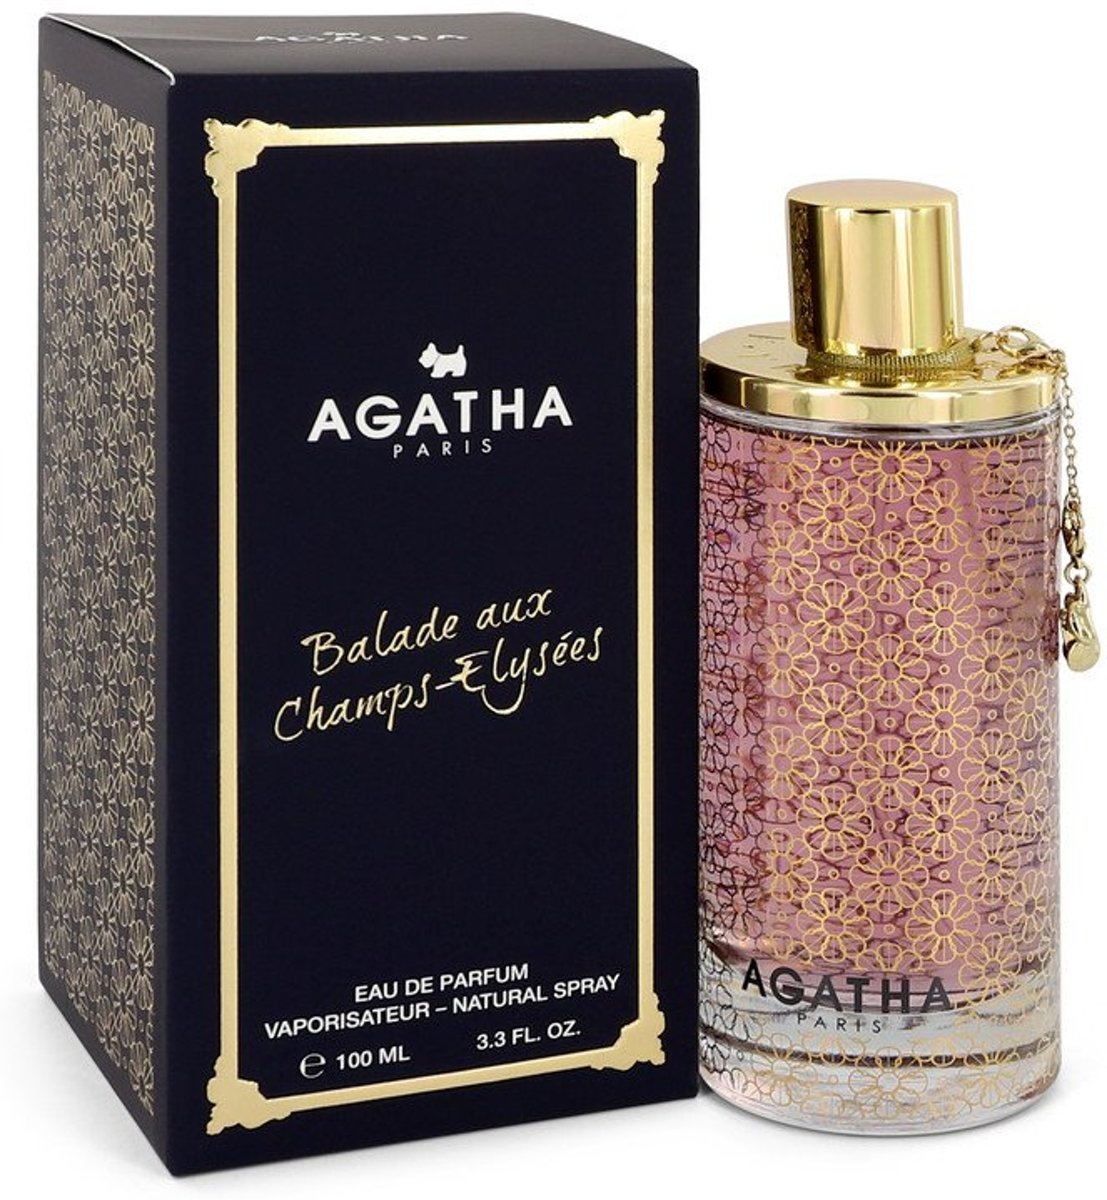 Agatha Paris Agatha Balade Aux Champs Elysees eau de parfum spray 100 ml